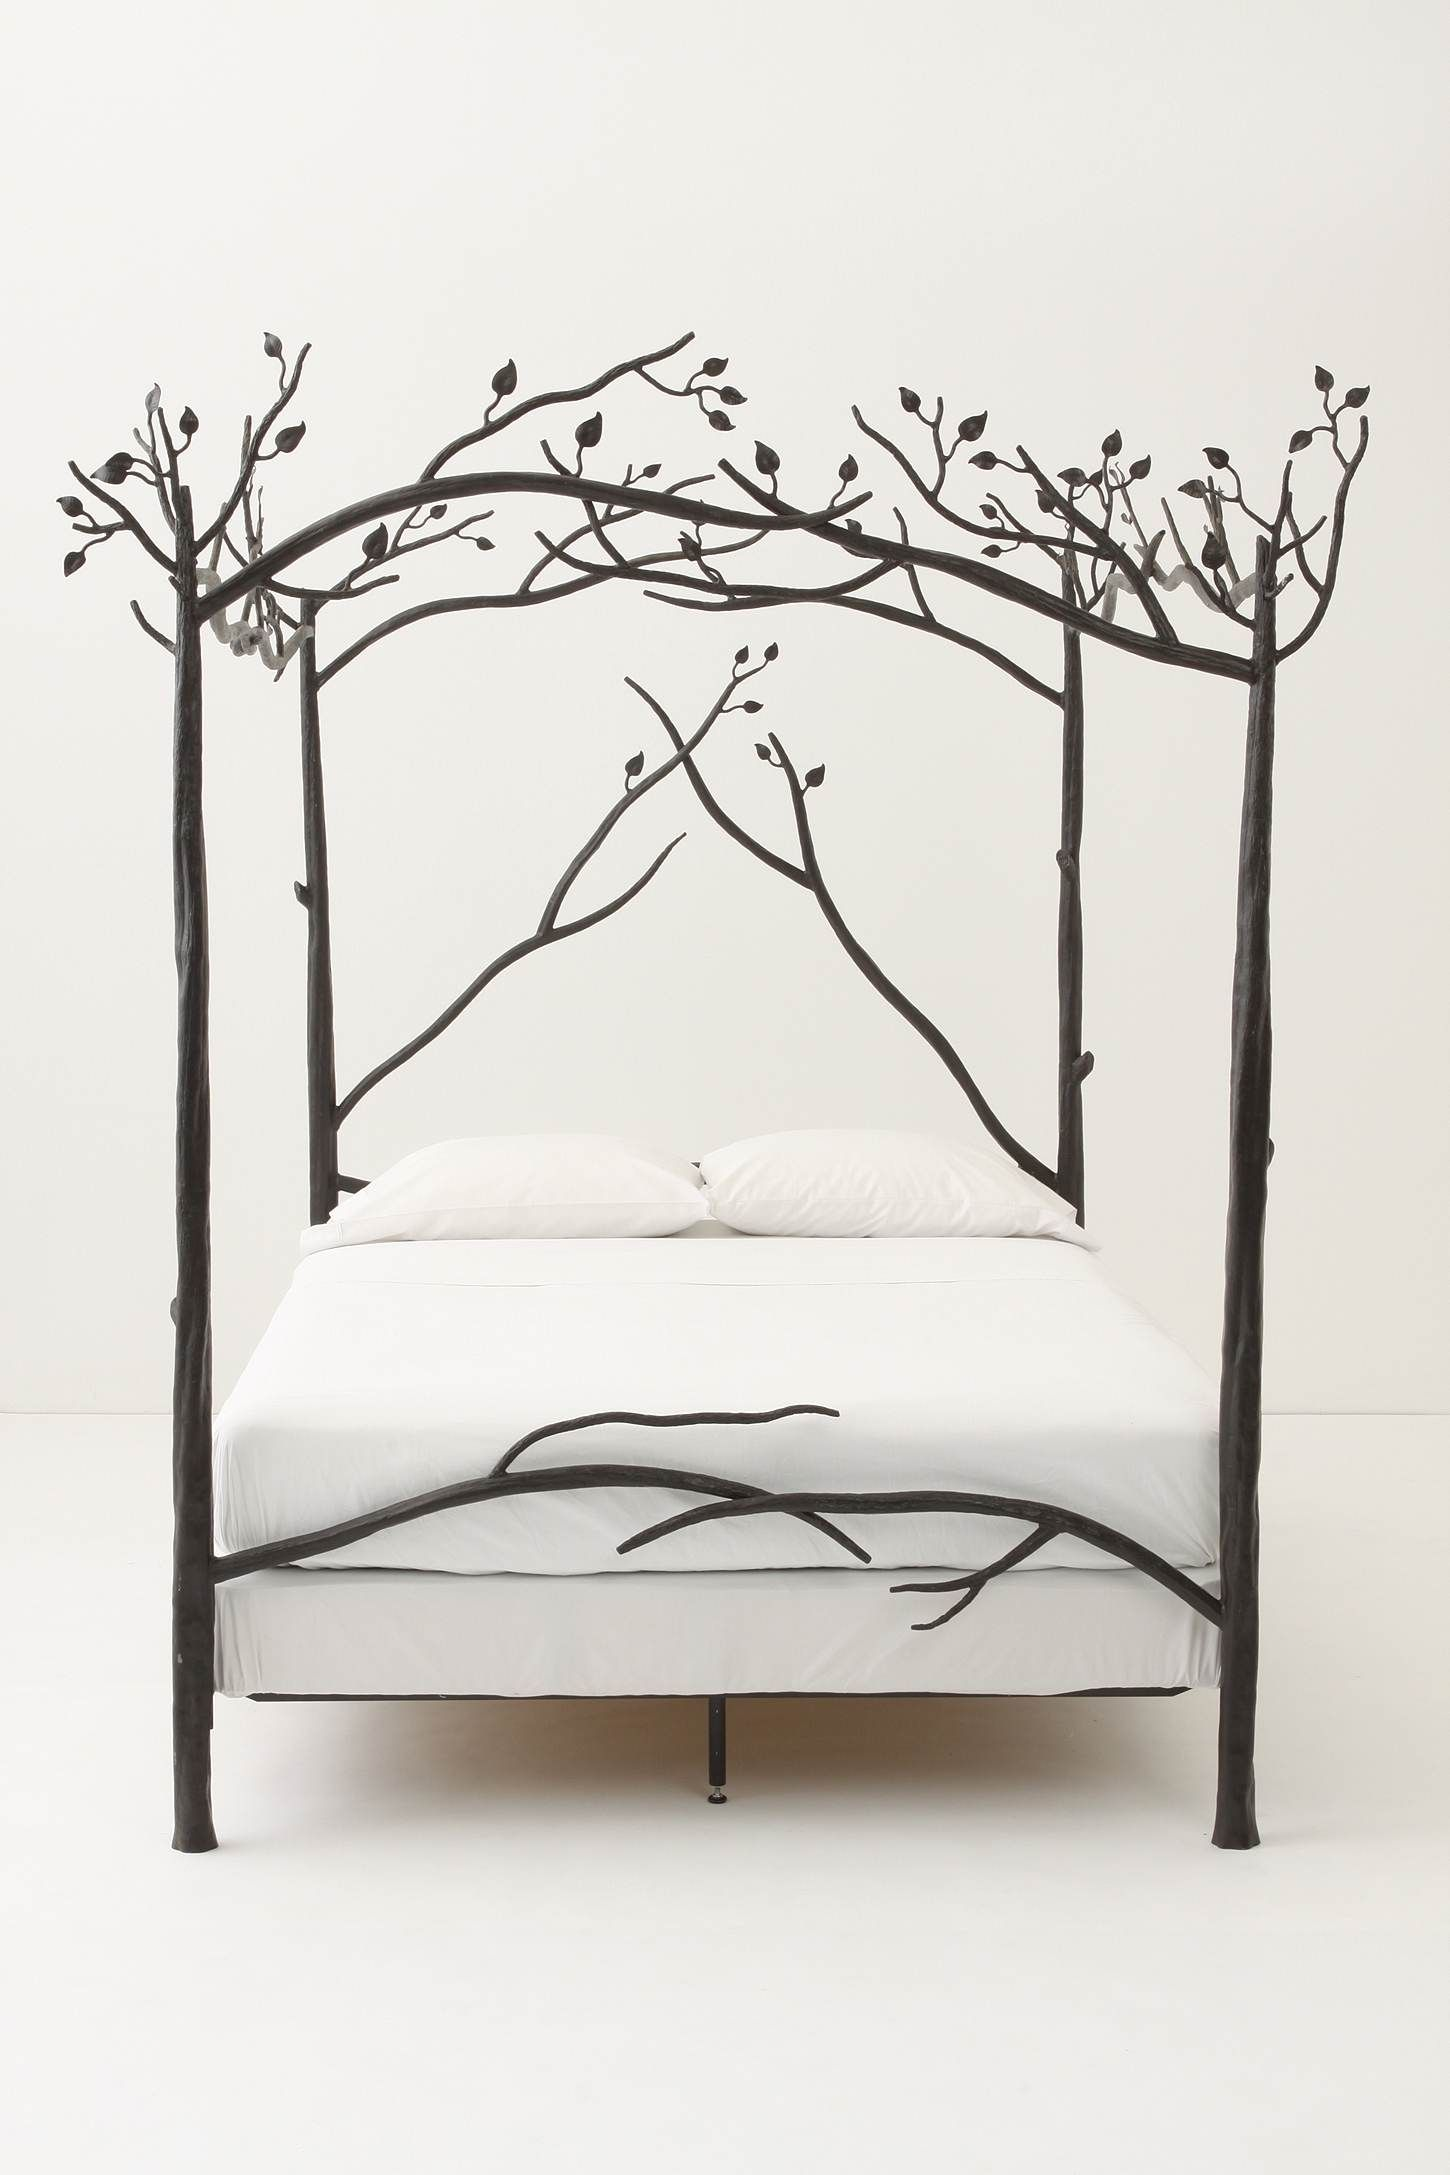 wrought iron canopy bed frame on forest canopy bed branch bed forest canopy canopy bed forest canopy bed branch bed forest